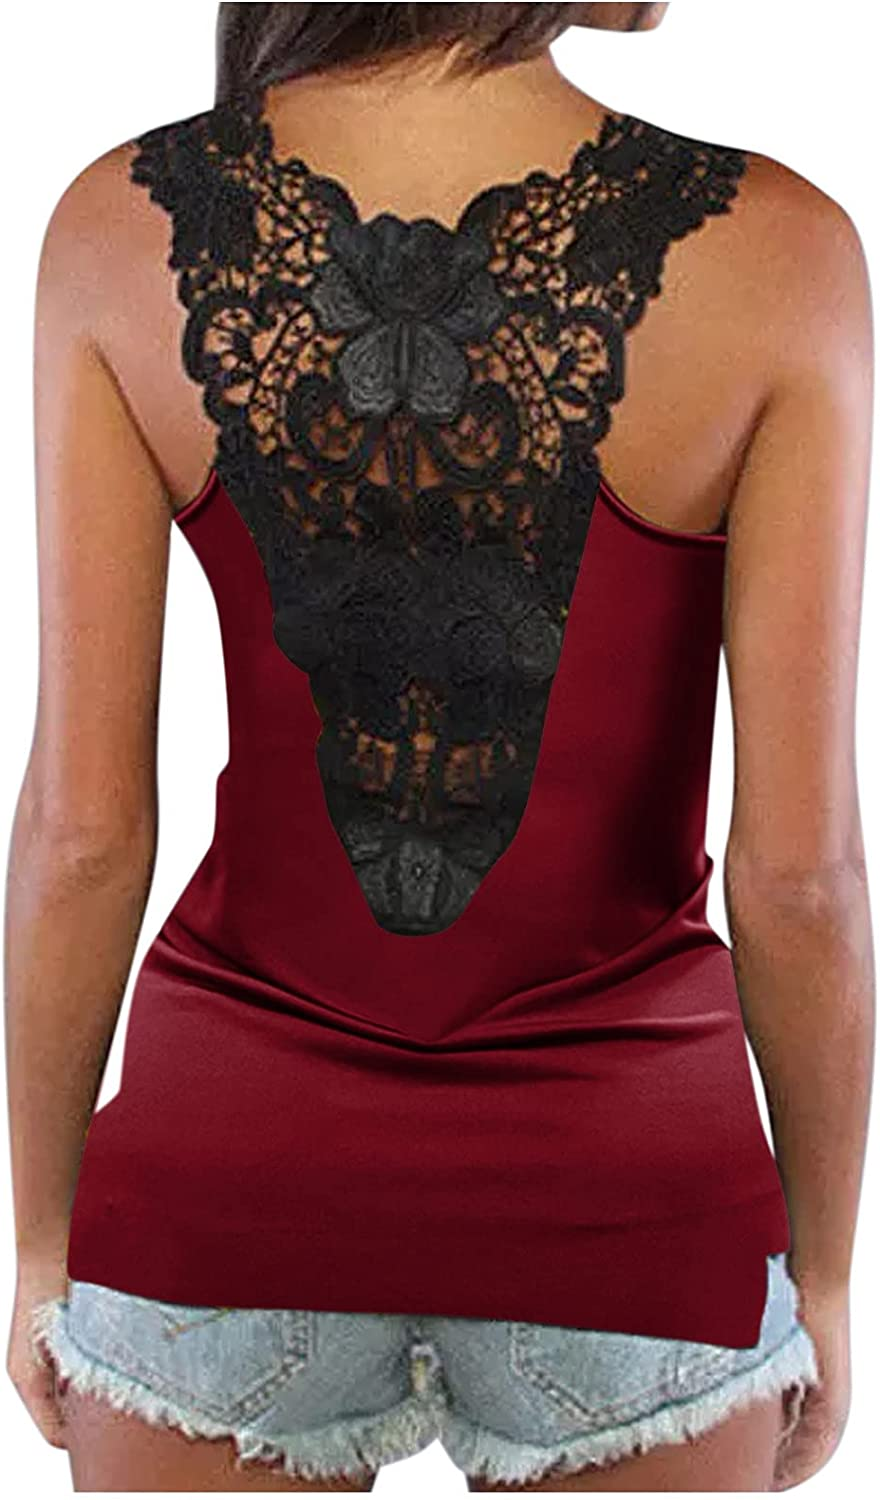 shaozheny Tops for Women Summer Casual Cami Tank Tops Fashion Lace Camisole Crop Tops Sleeveless Vest